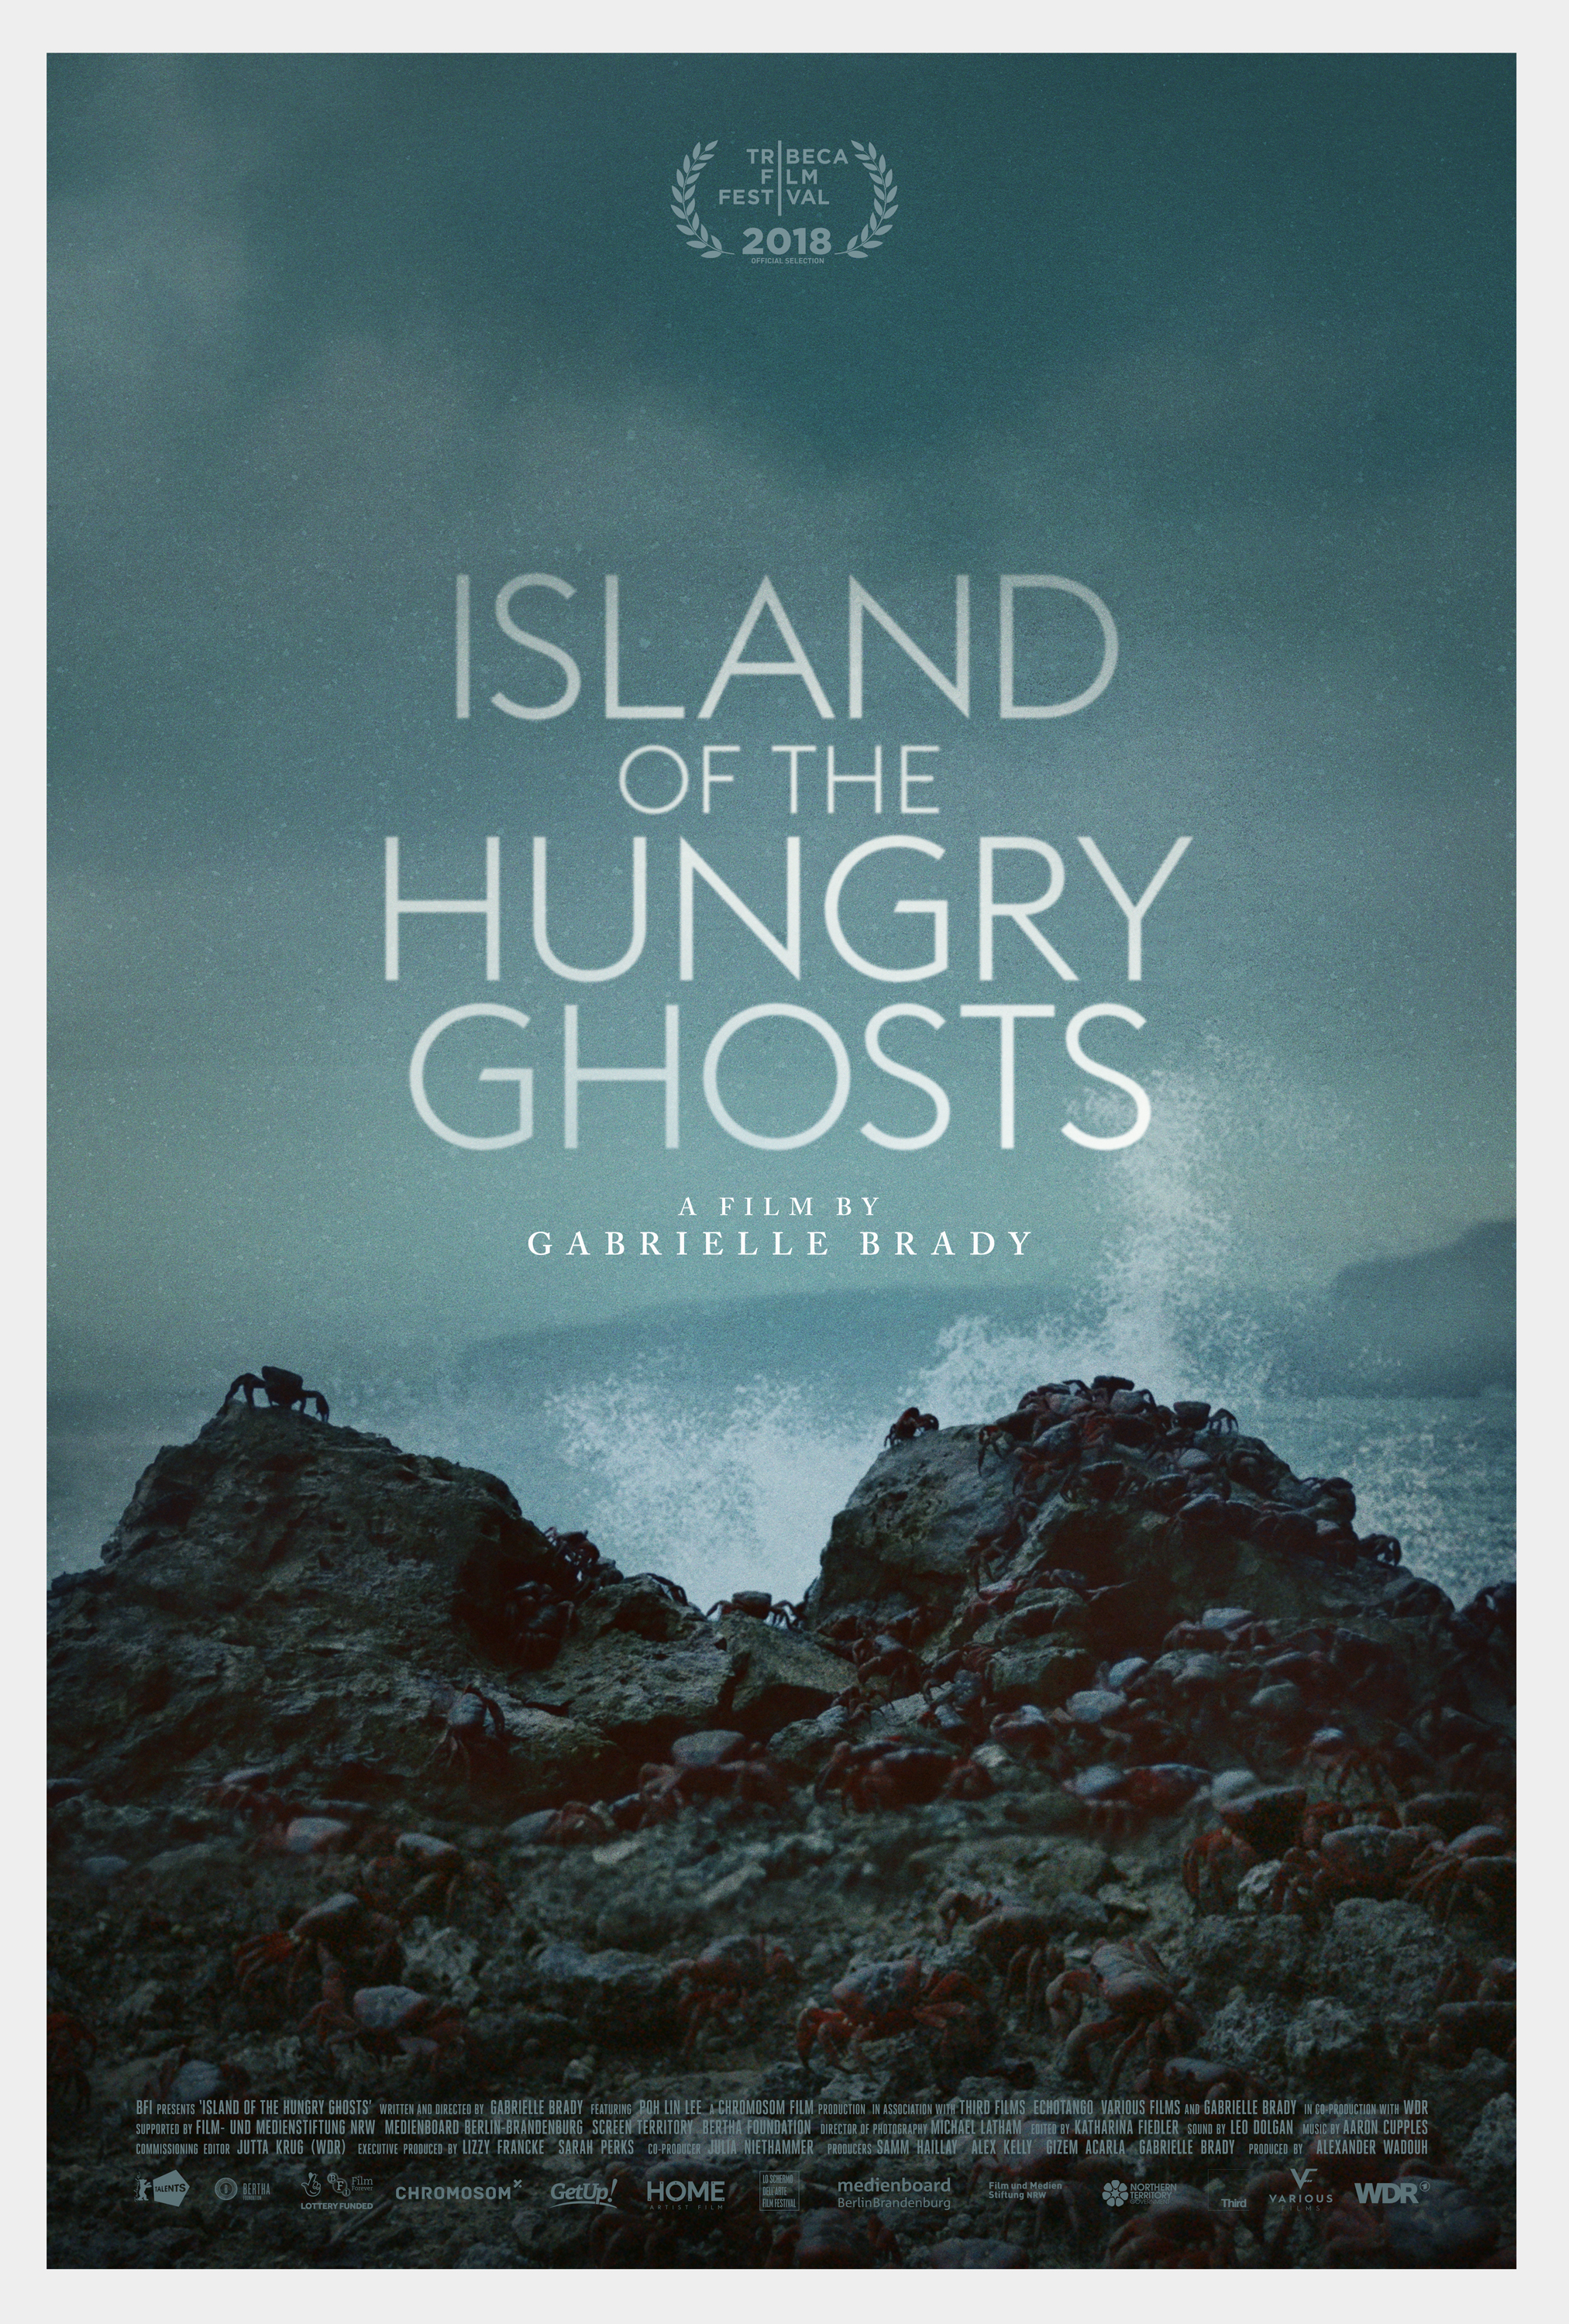 ISLAND OF THE HUNGRY GHOSTS - COMING 2019